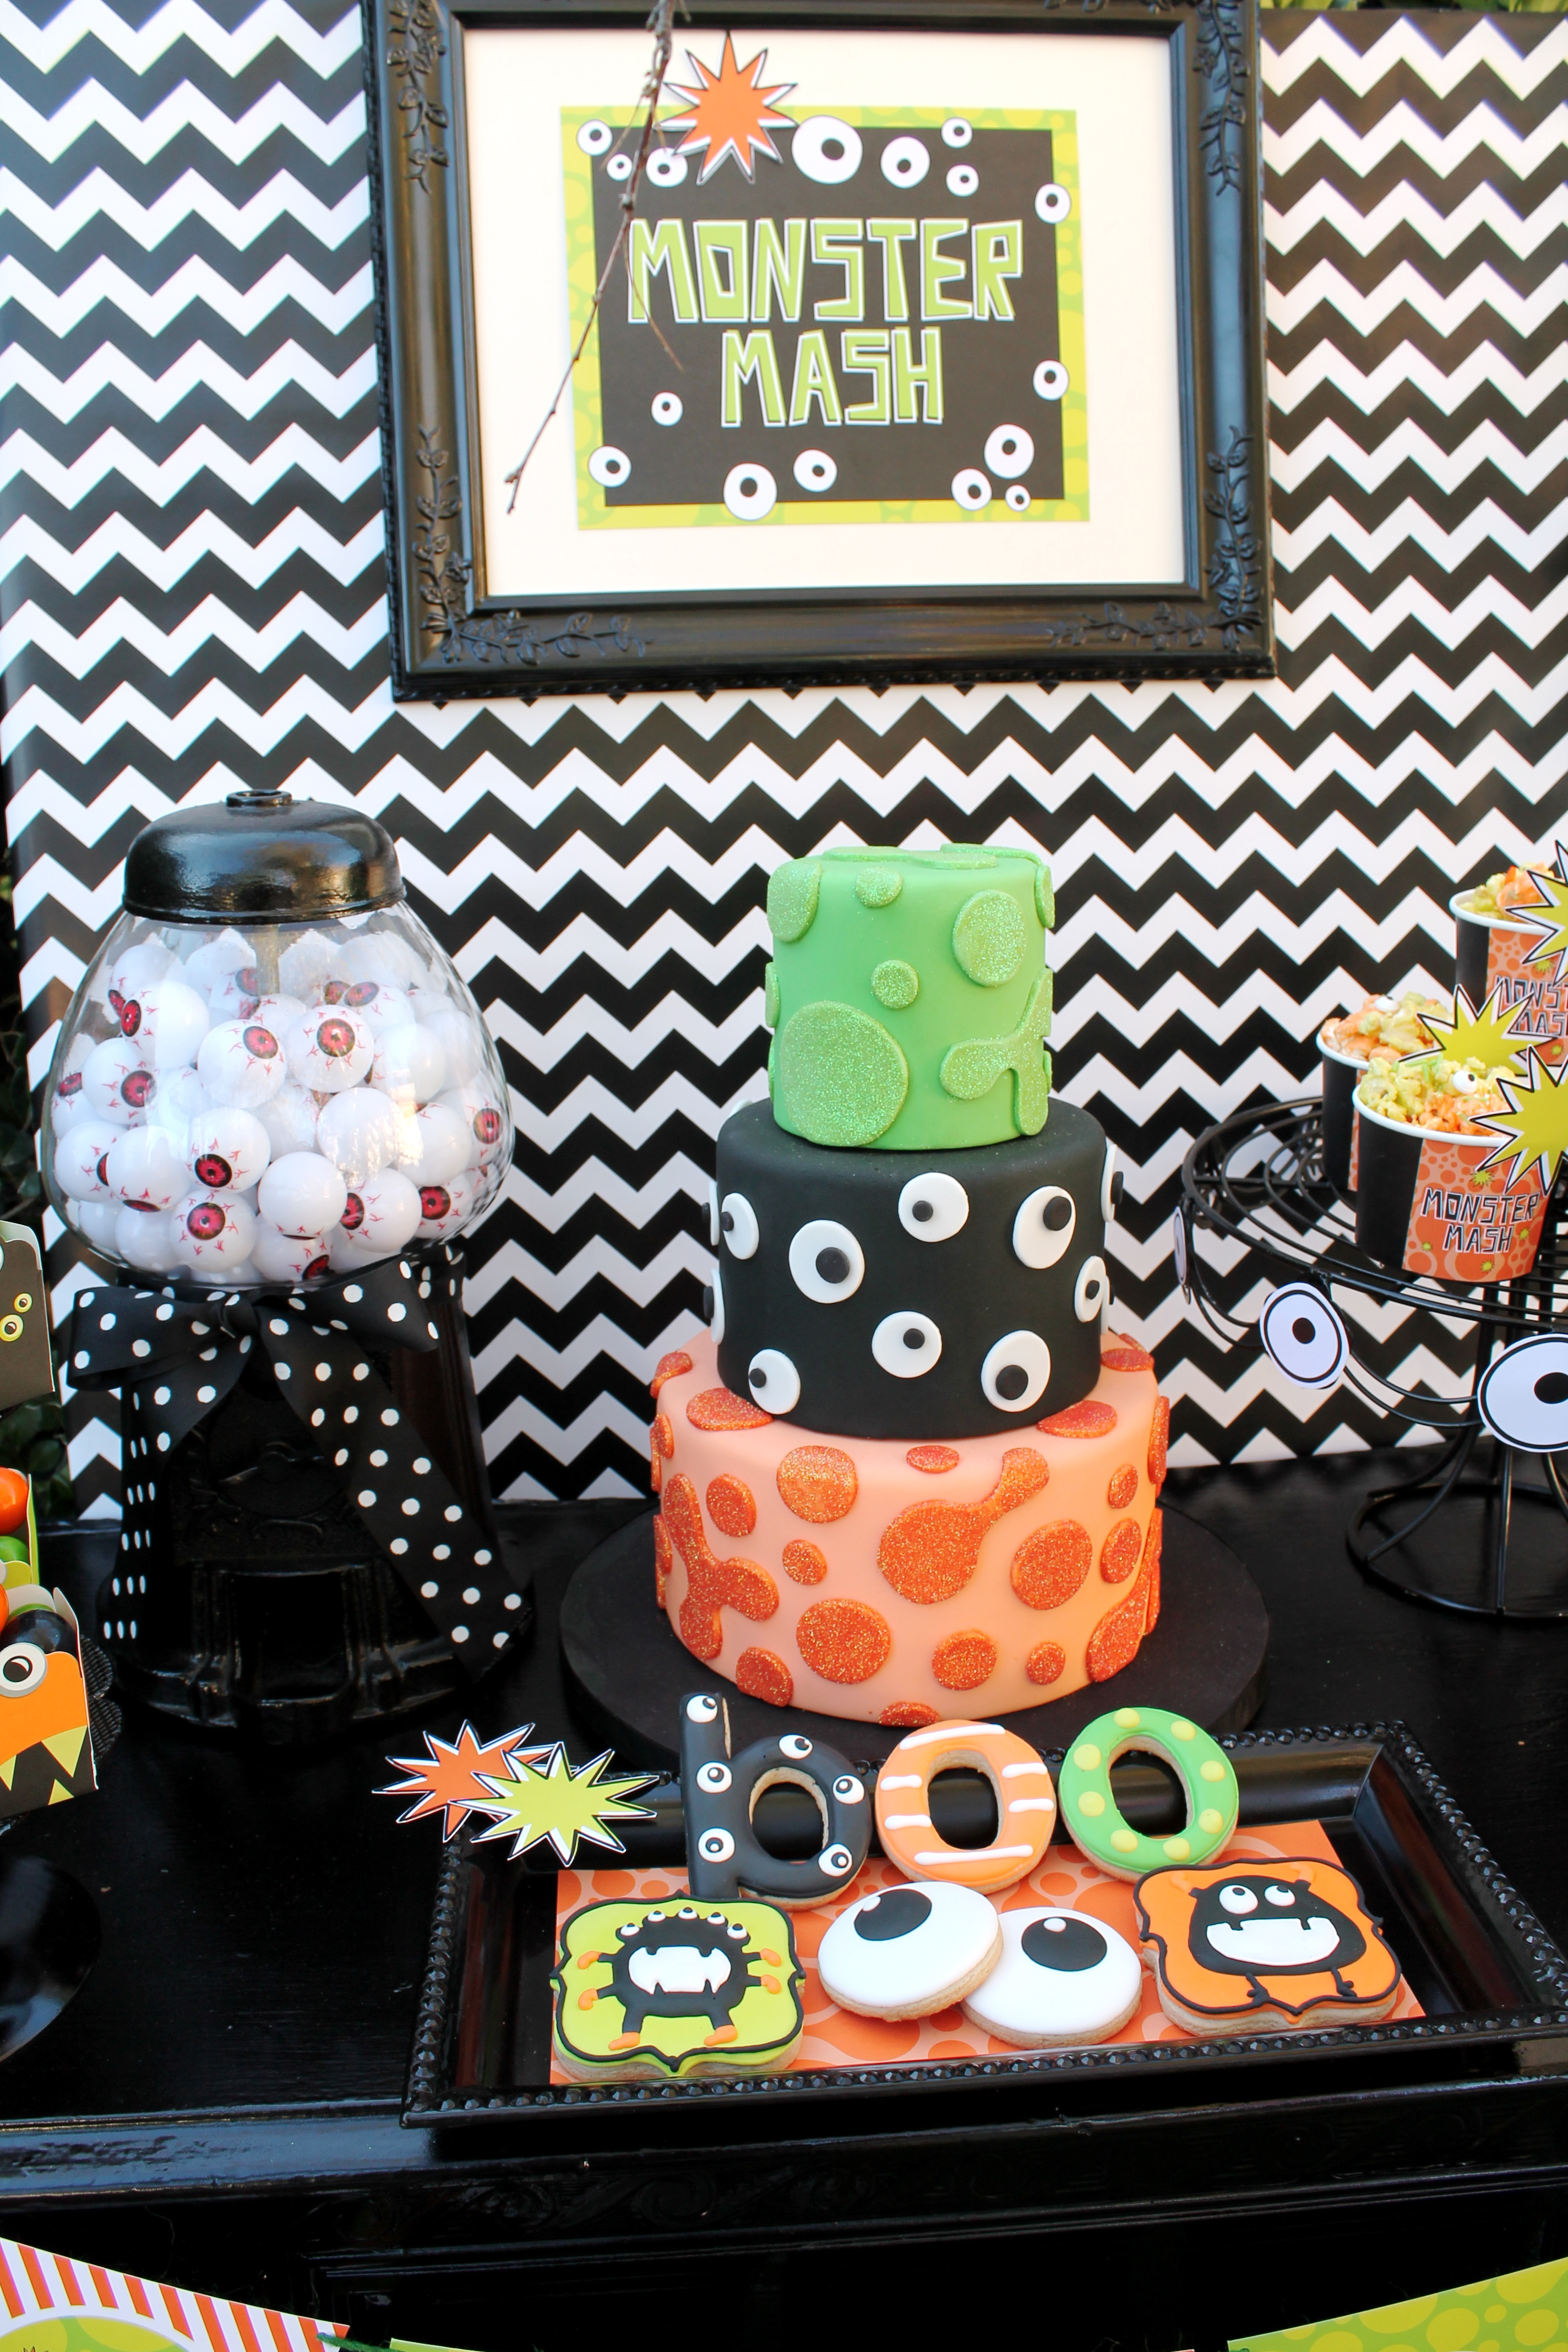 halloween monster mash party - creative juice